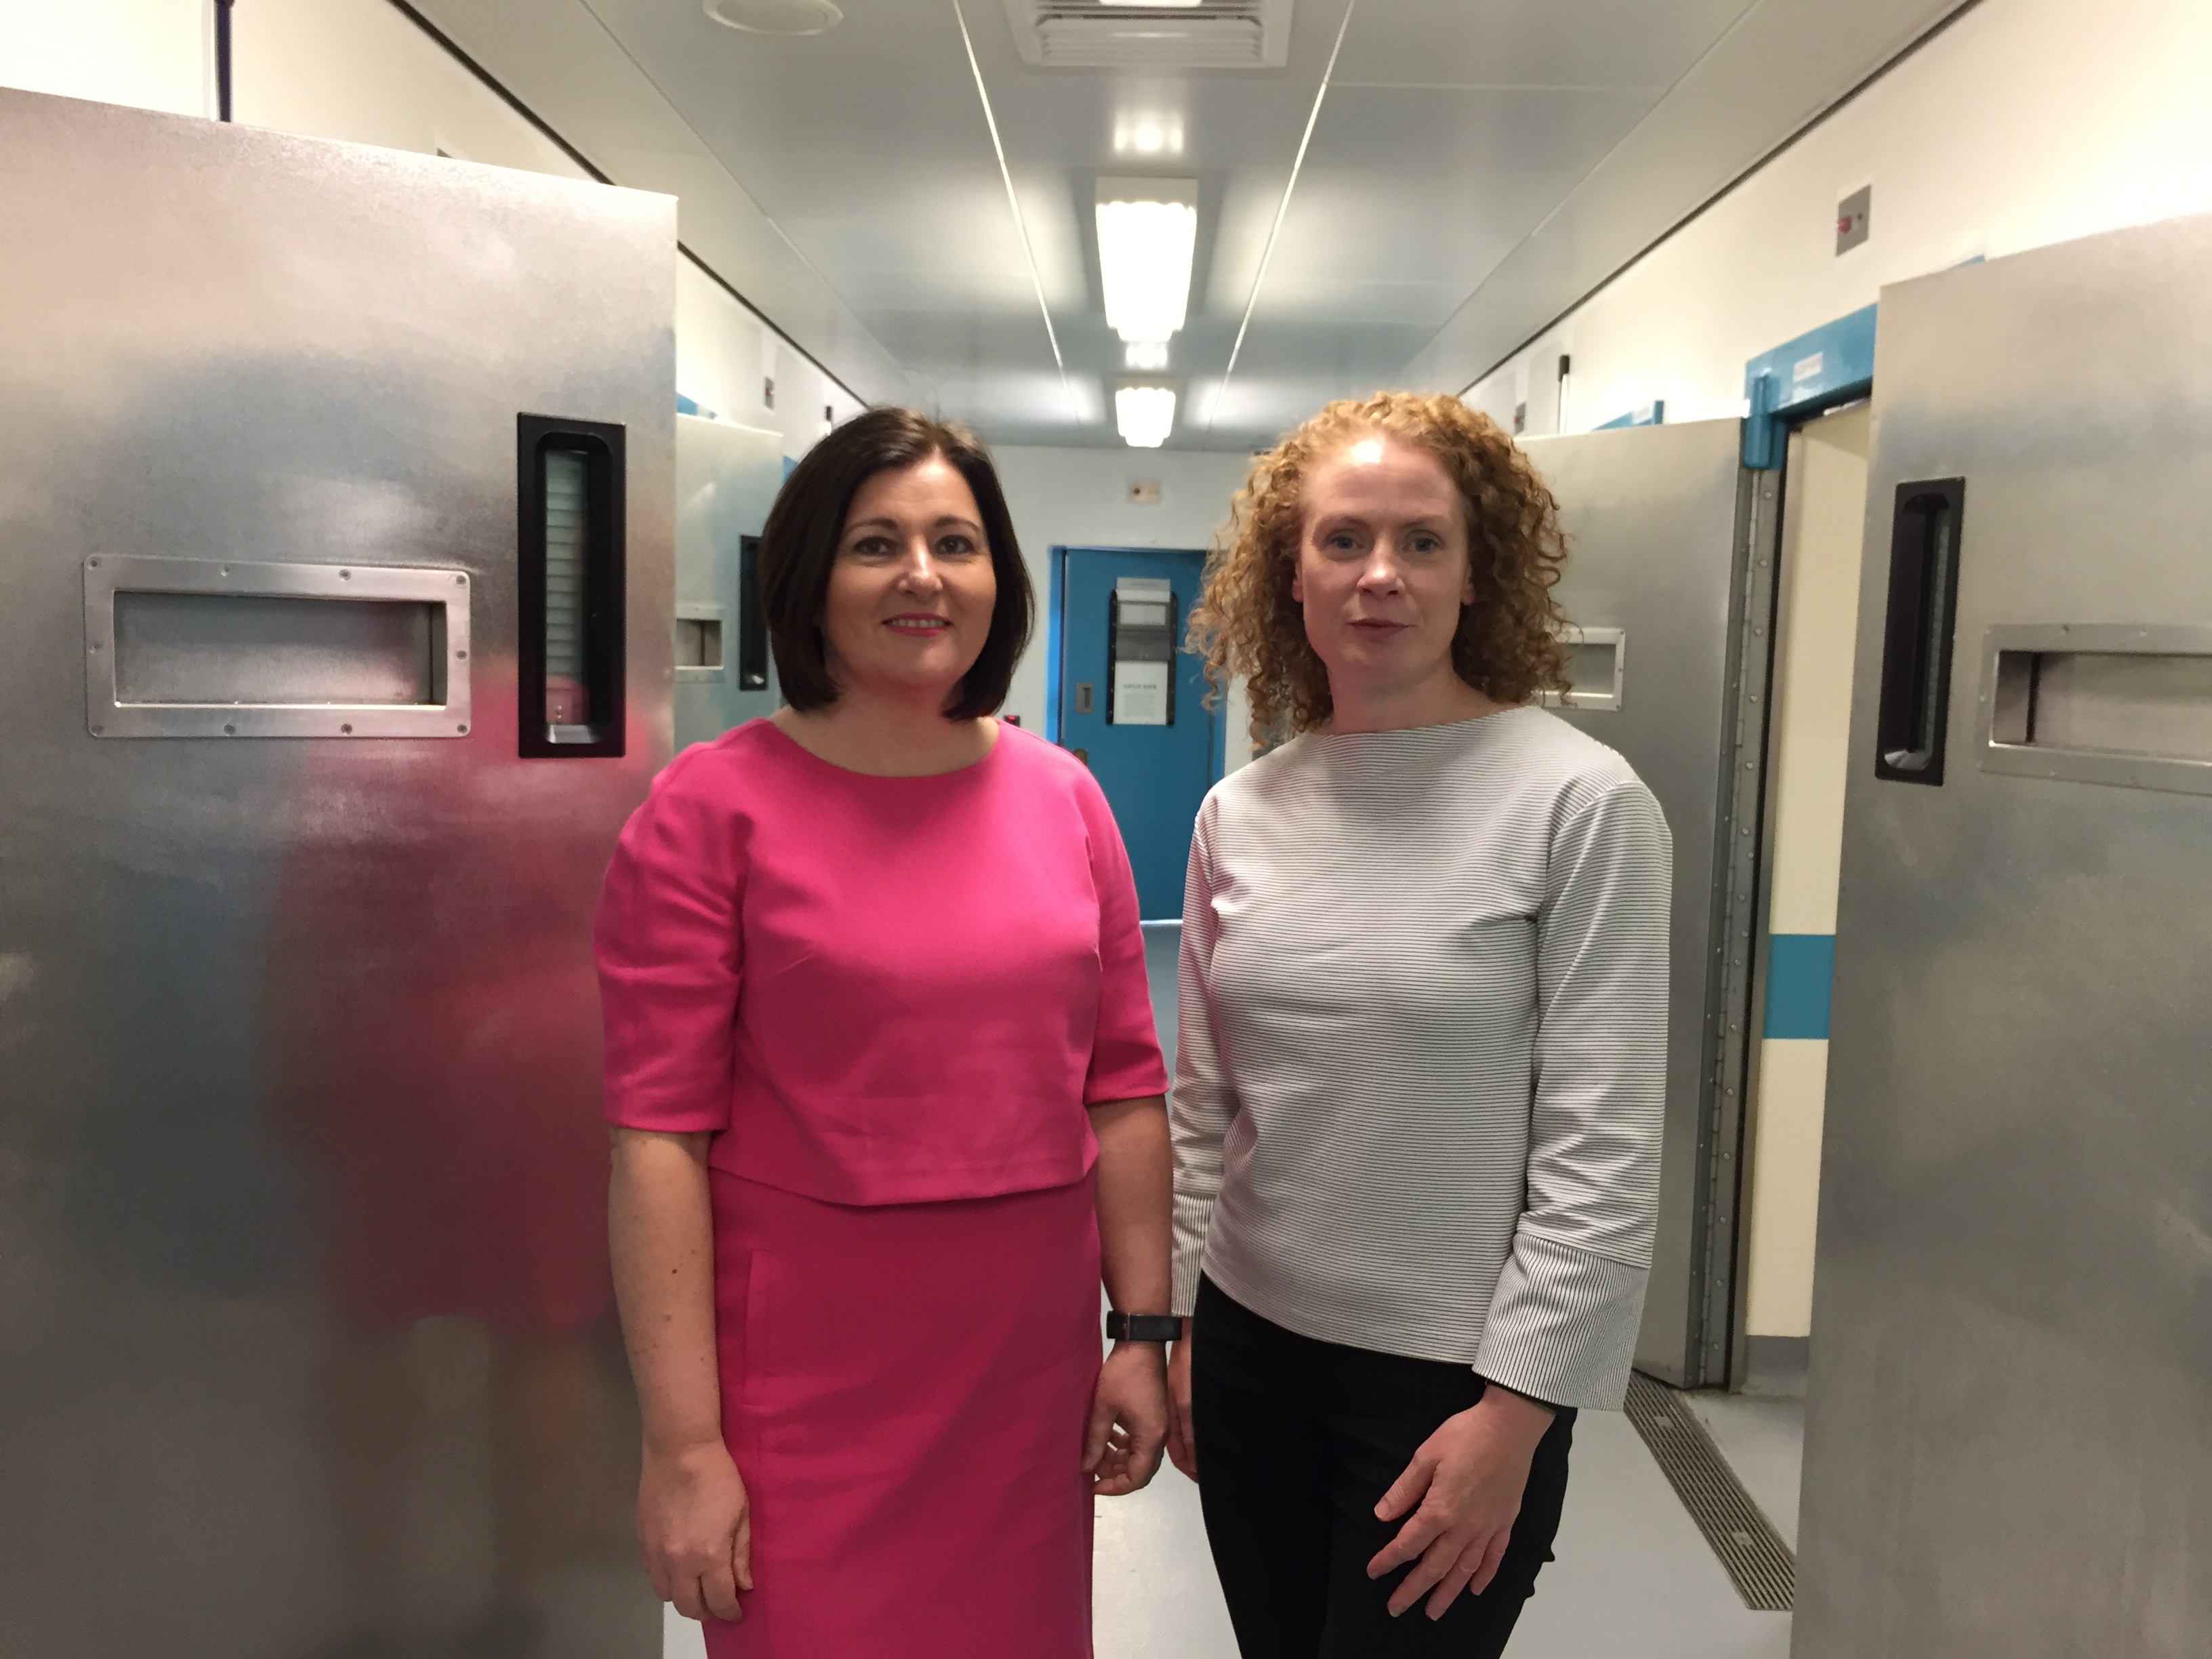 Charlotte McArdle, left, Northern Ireland's chief nursing officer, with Una Williamson, the PSNI's head of reducing offending and safer custody